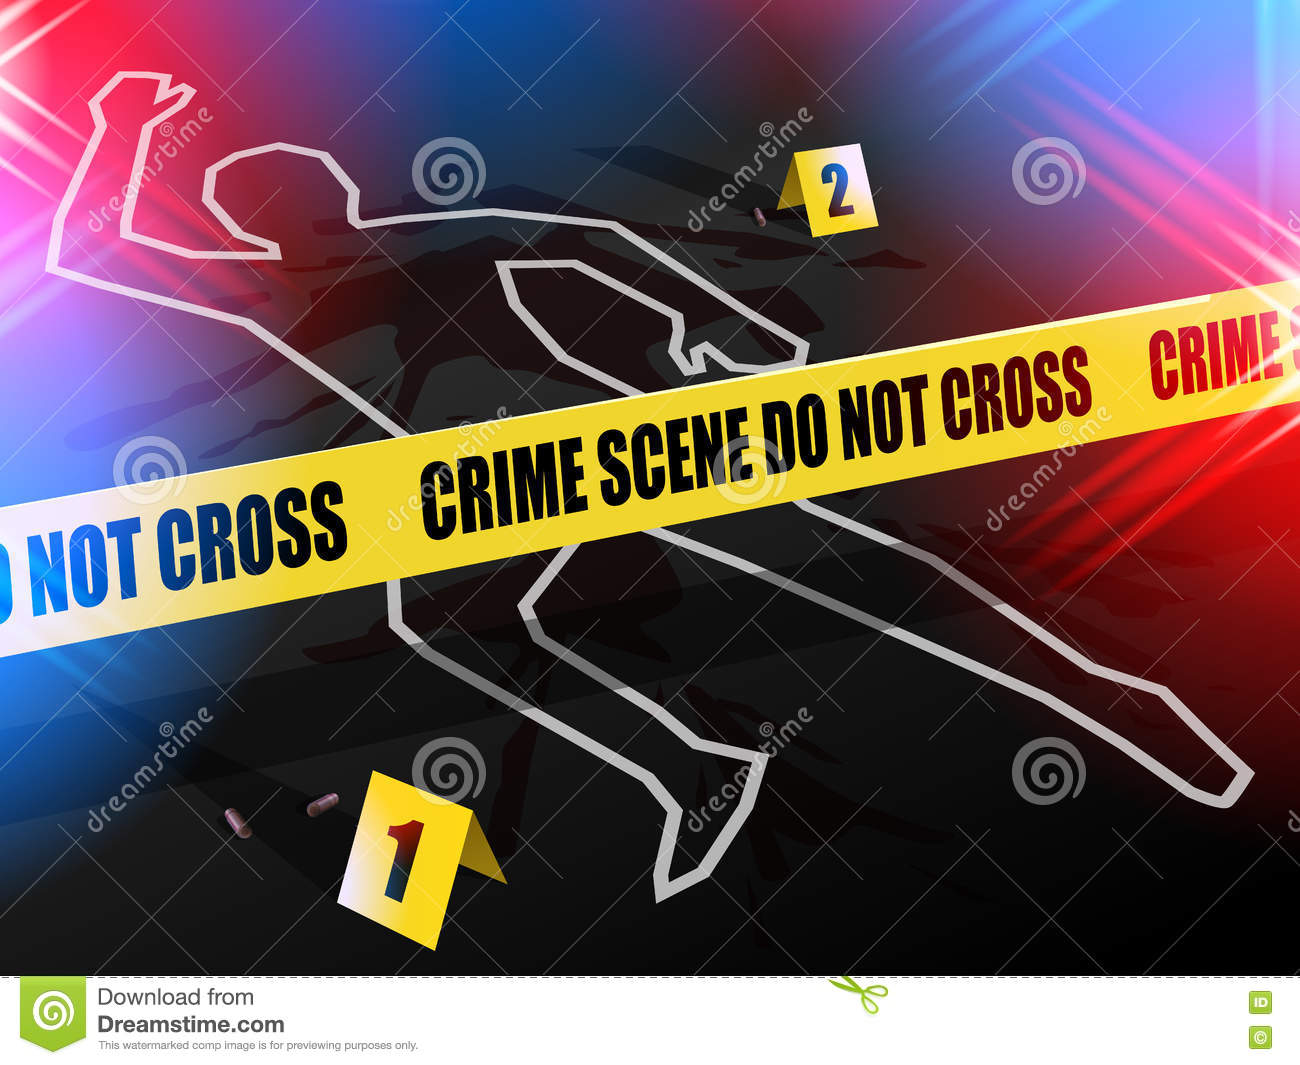 Crime Scene  Do Not Cross, With Chalk Outline Of Gun